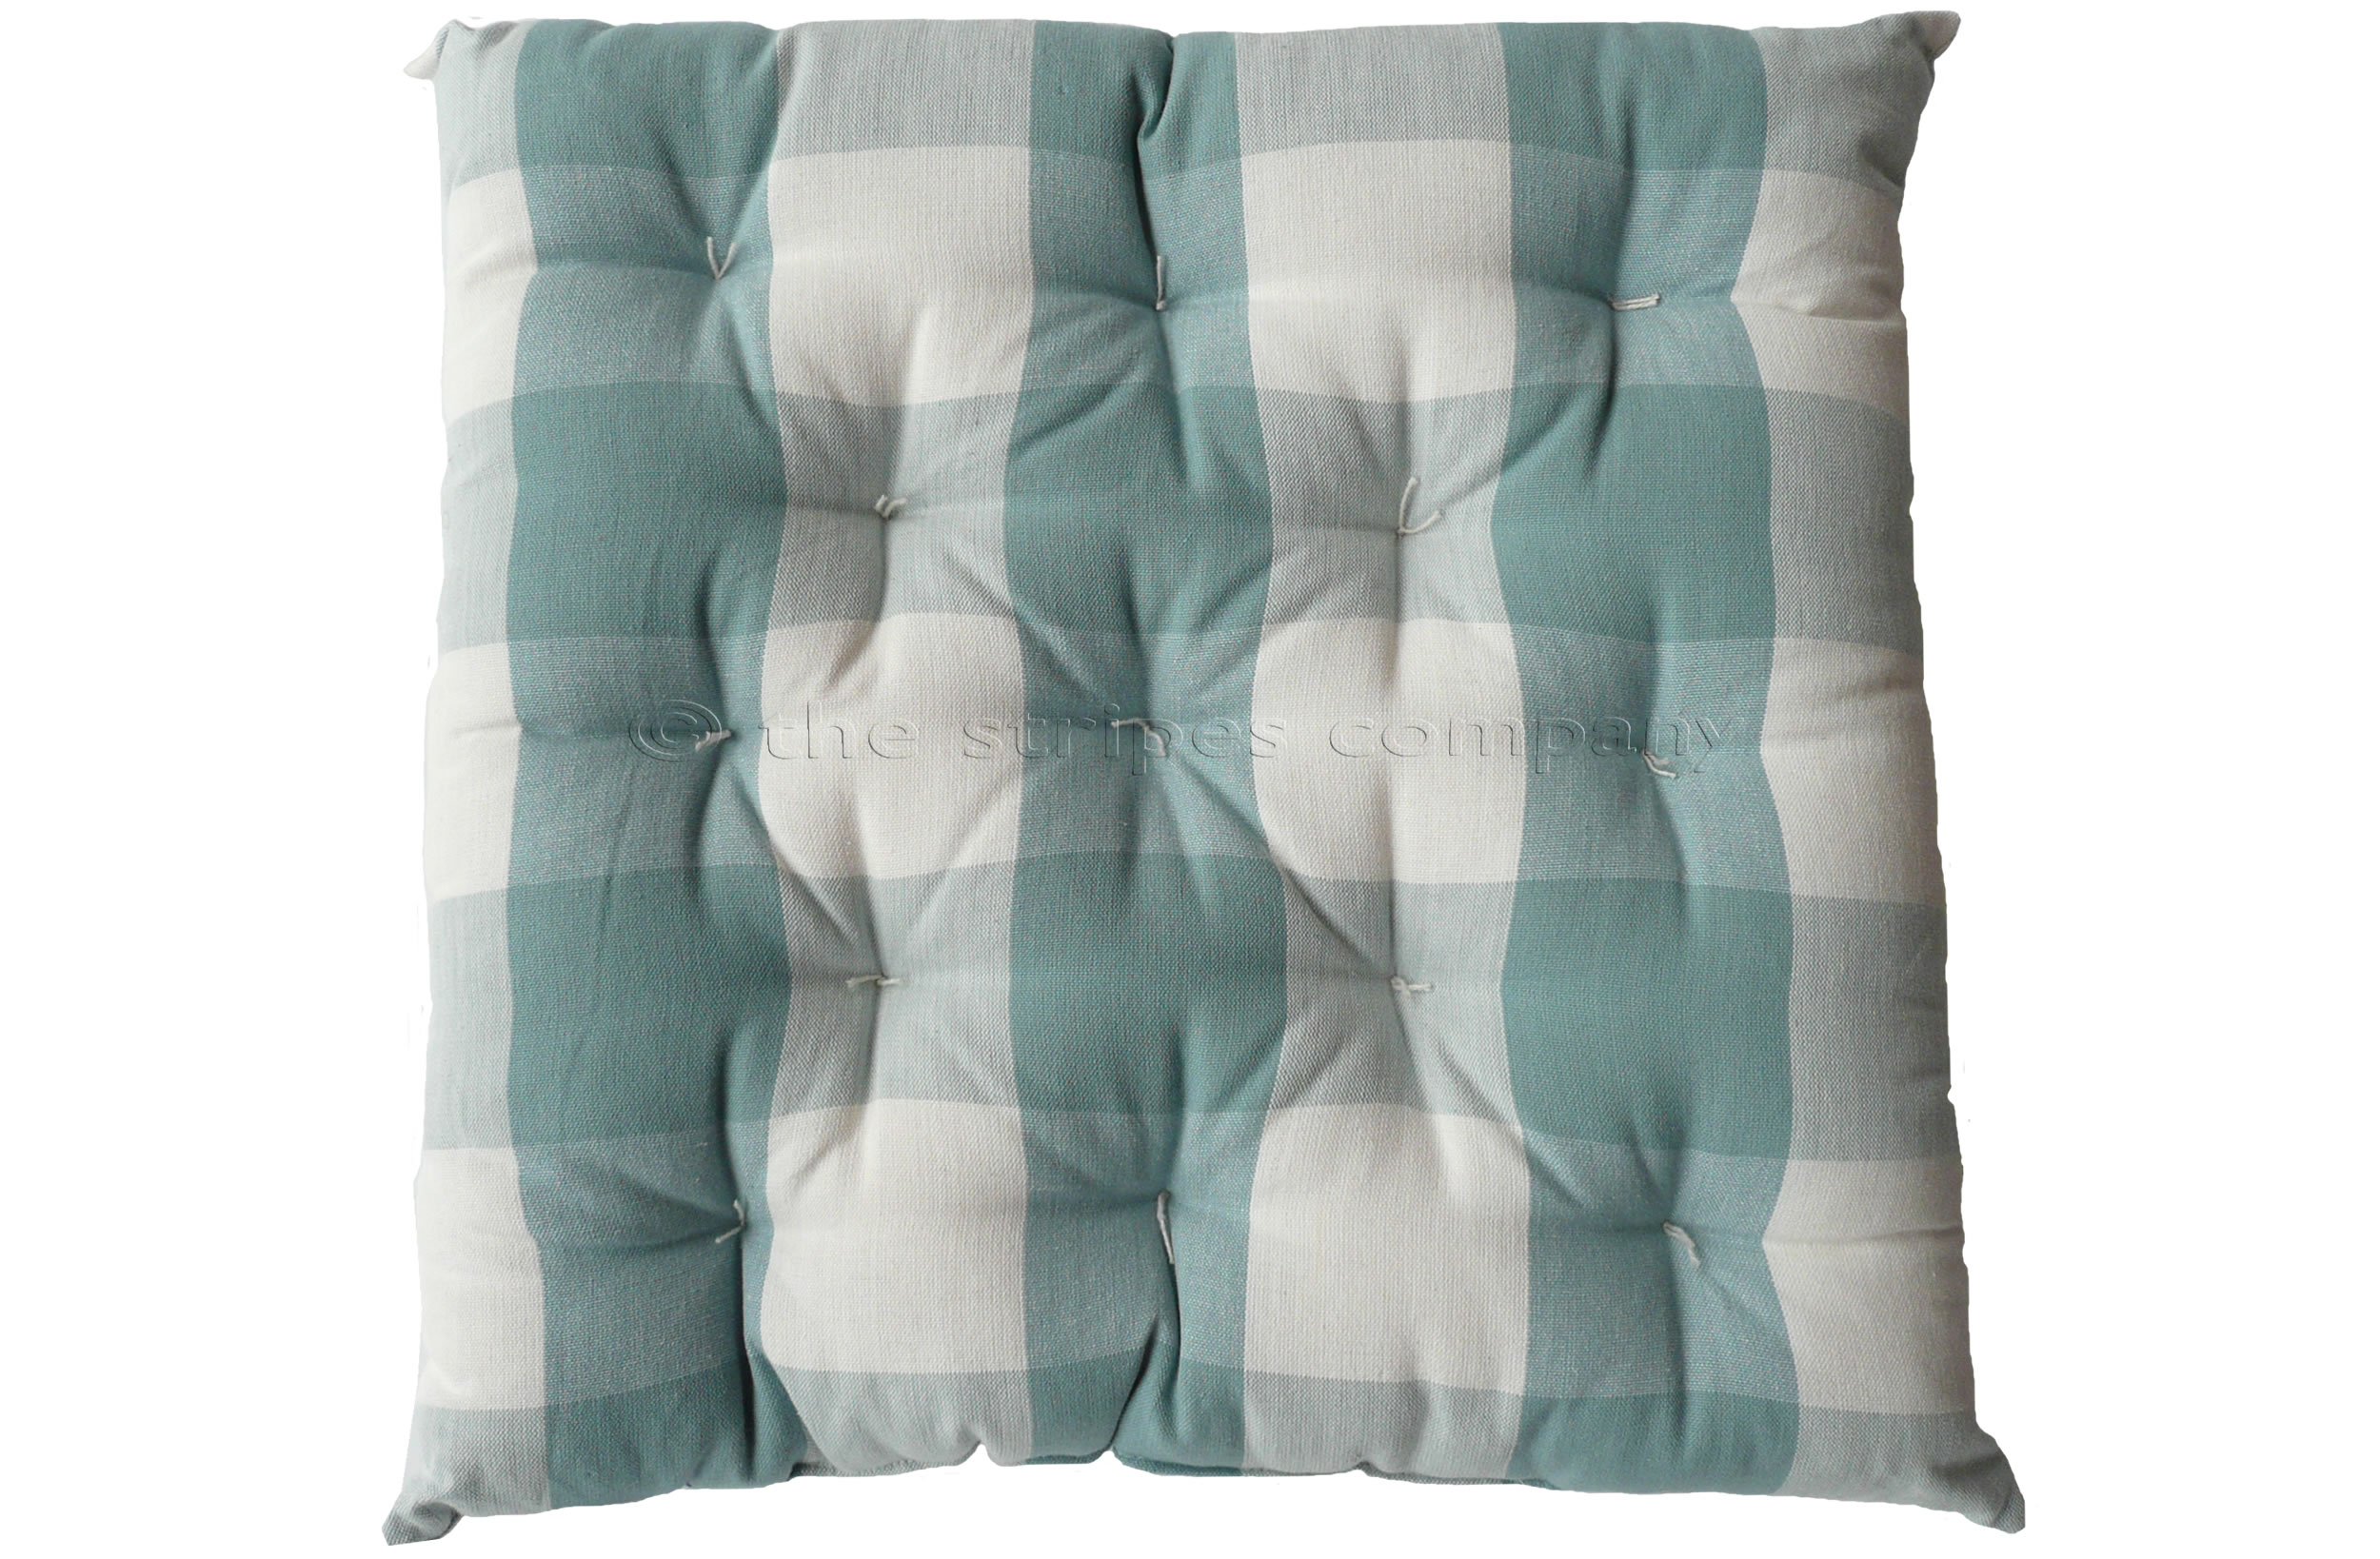 Gingham Seat Pads Teal and White | Large Check Chair Cushions | Vichy Check Seat Pads